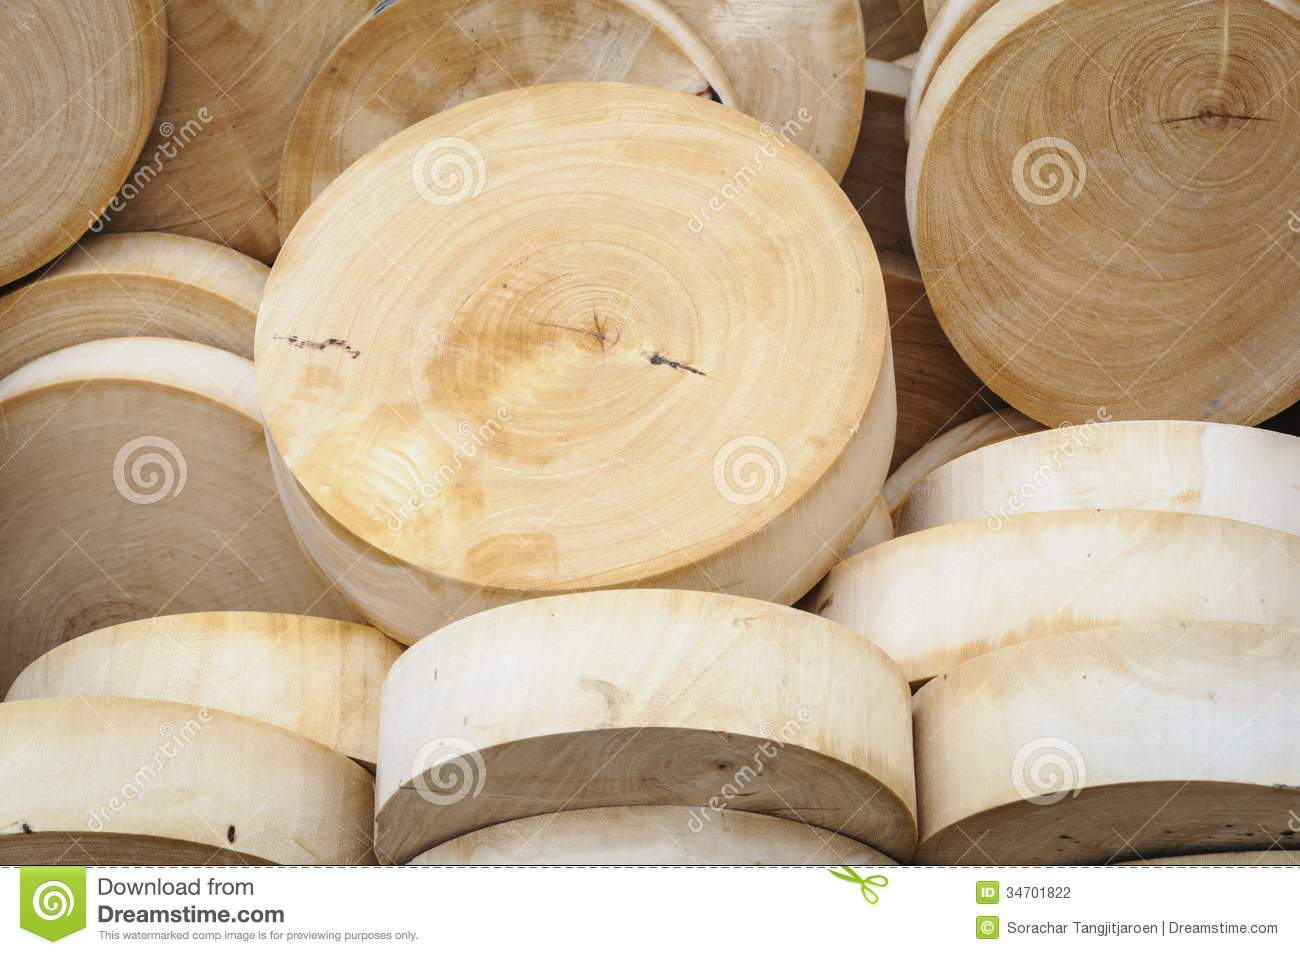 Round Wooden Cutting Boards In Market Stock Photo Image